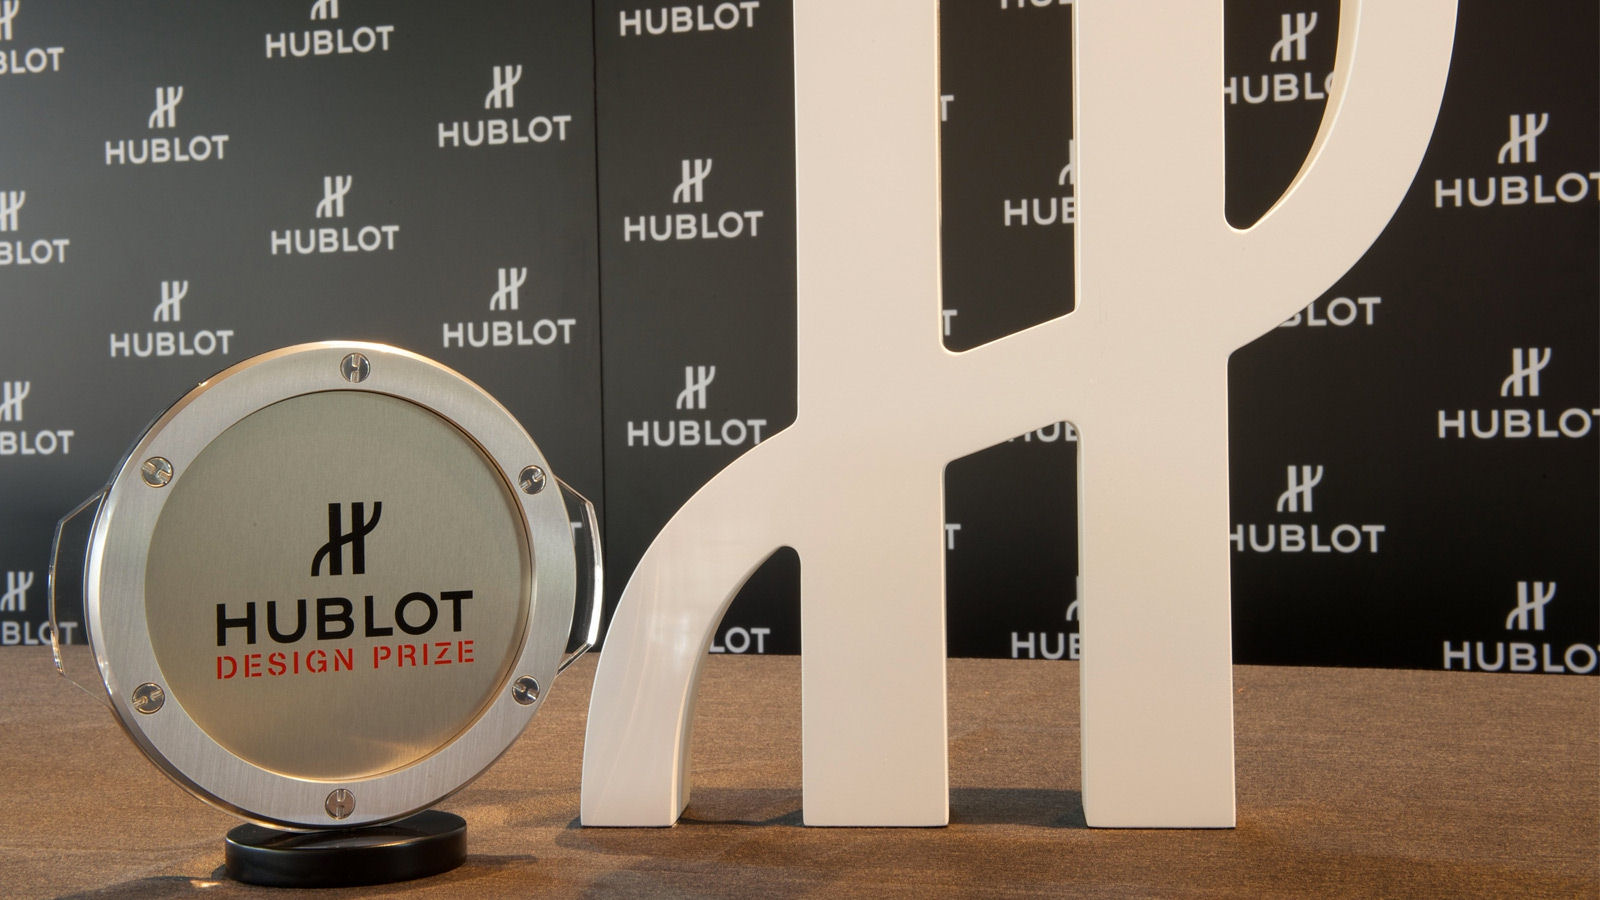 Hublot Design Award